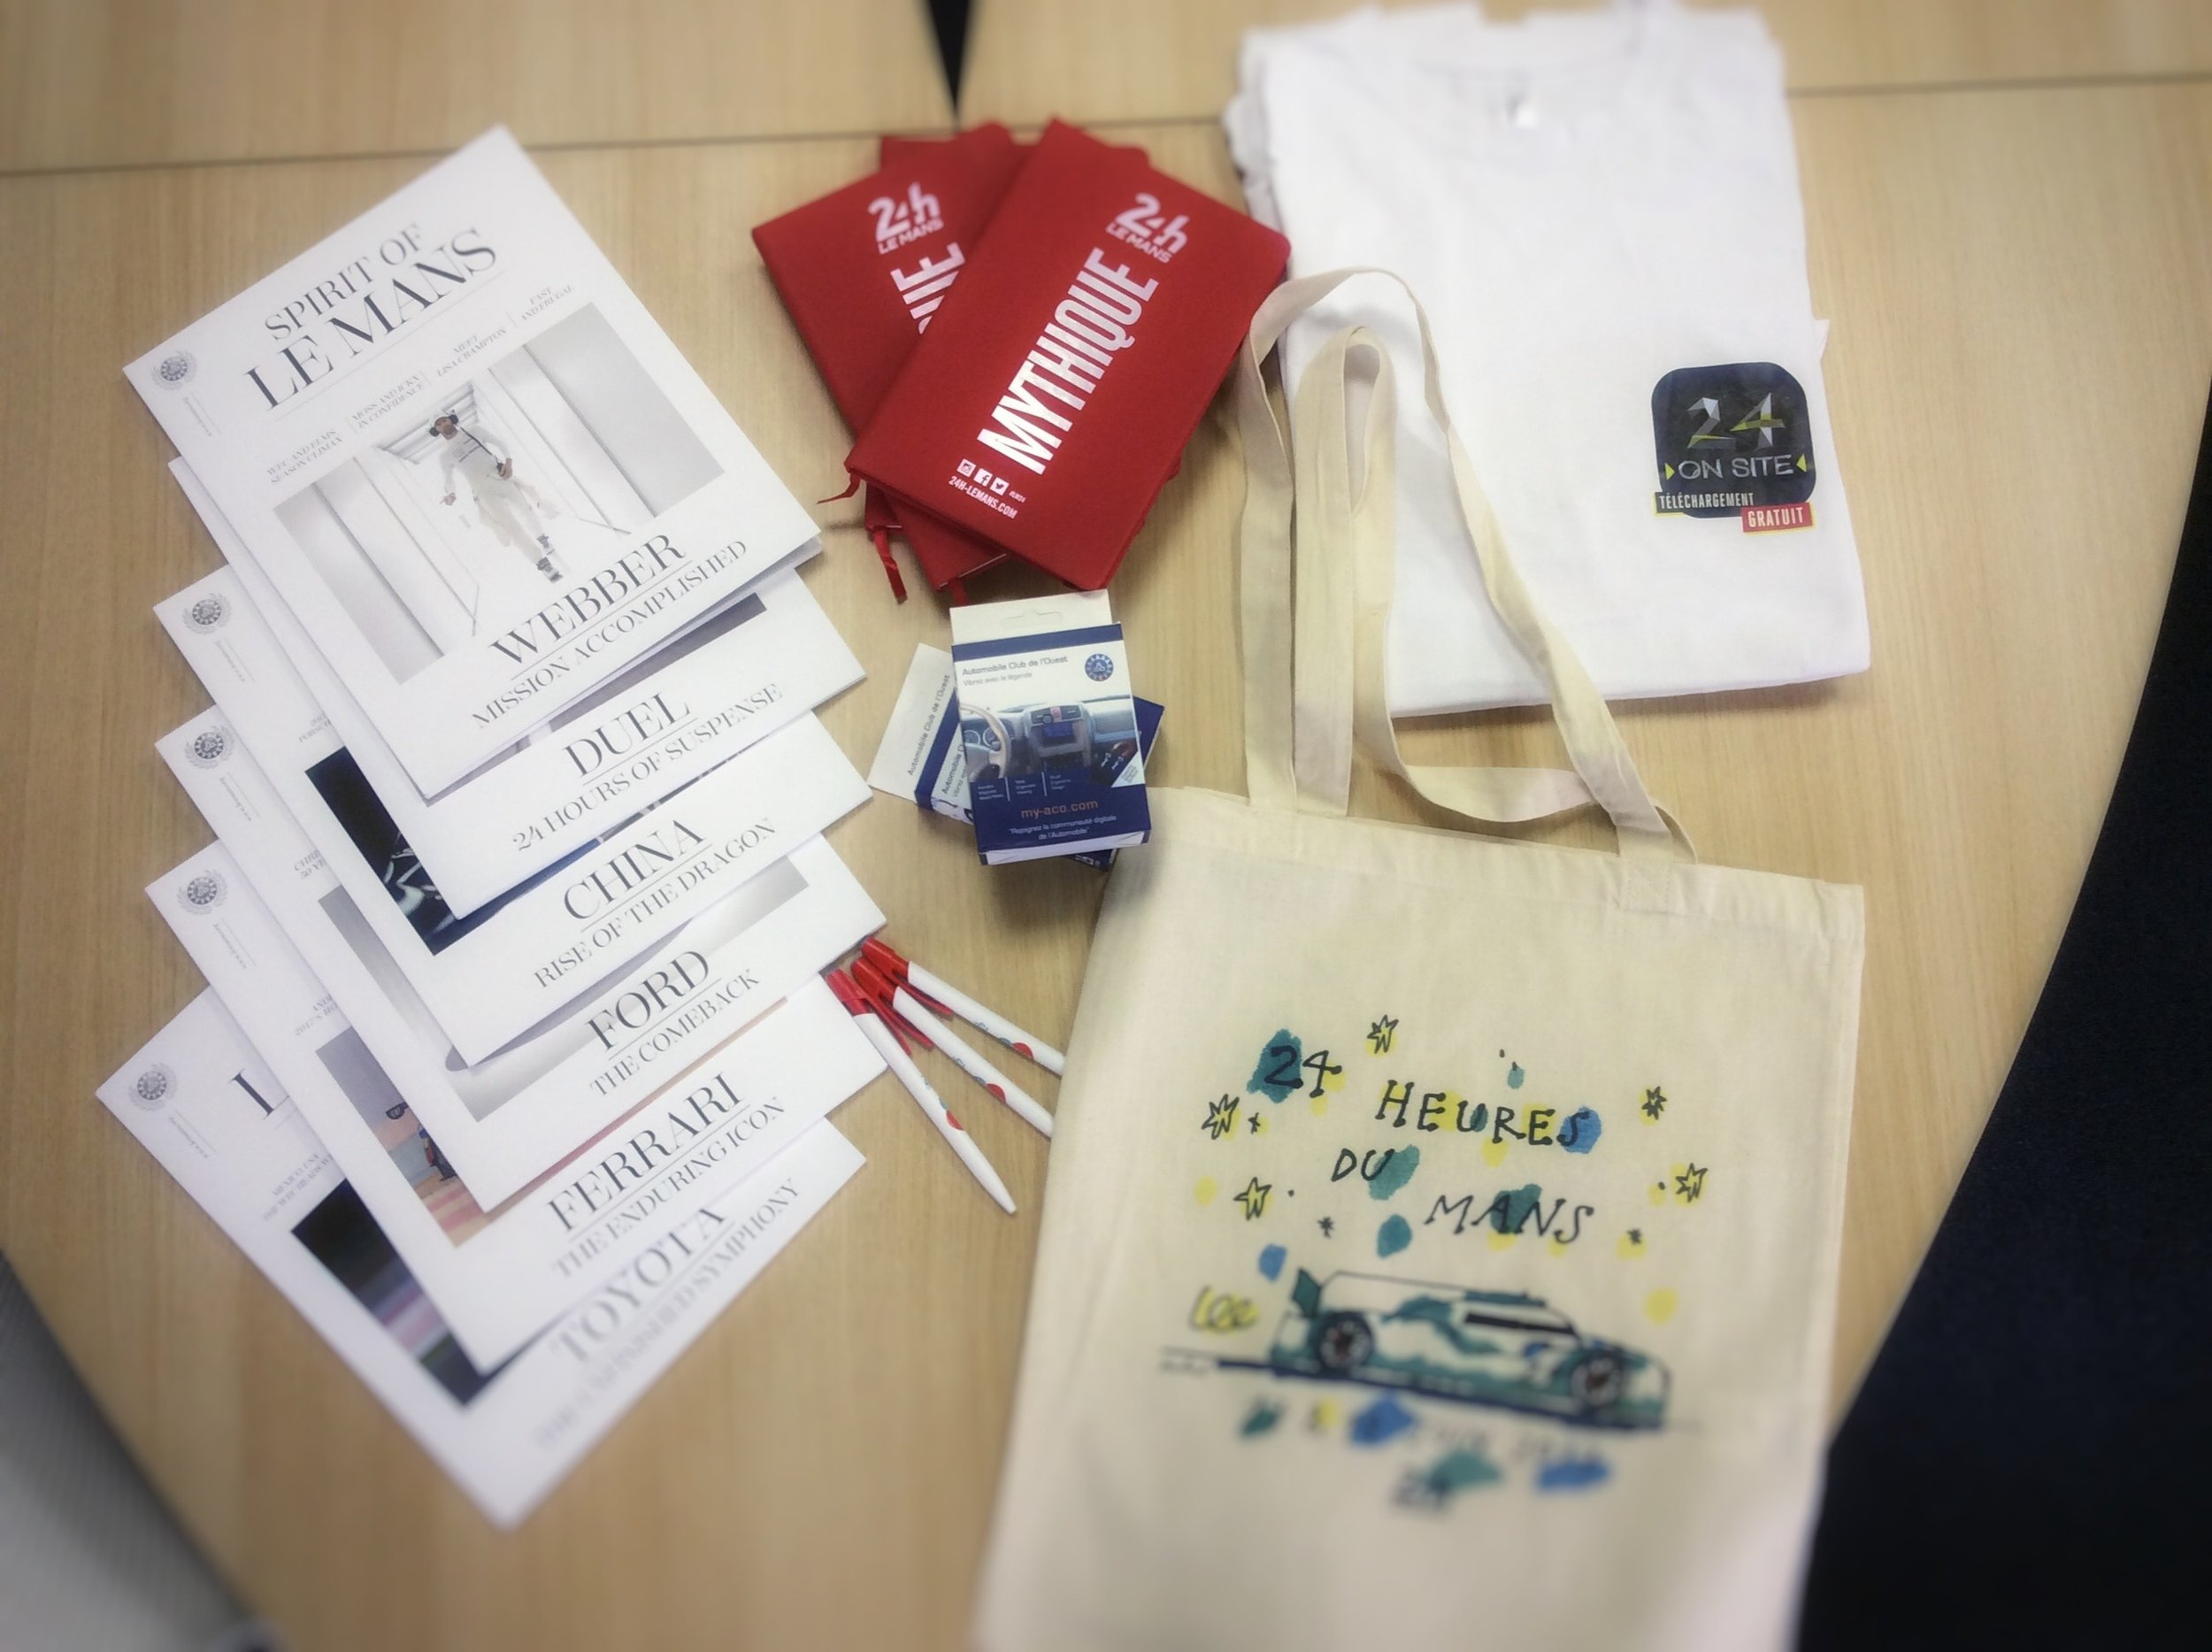 Le Mans Fan-Kit: - 3 sets of the Spirit of Le Mans Magazine:https://www.spirit-of-lemans.com/3 T-shirts of Le Mans on site3 Notebooks of this year's race3 ACO phone magnets3 Pens3 handbags of Le Mans 2017